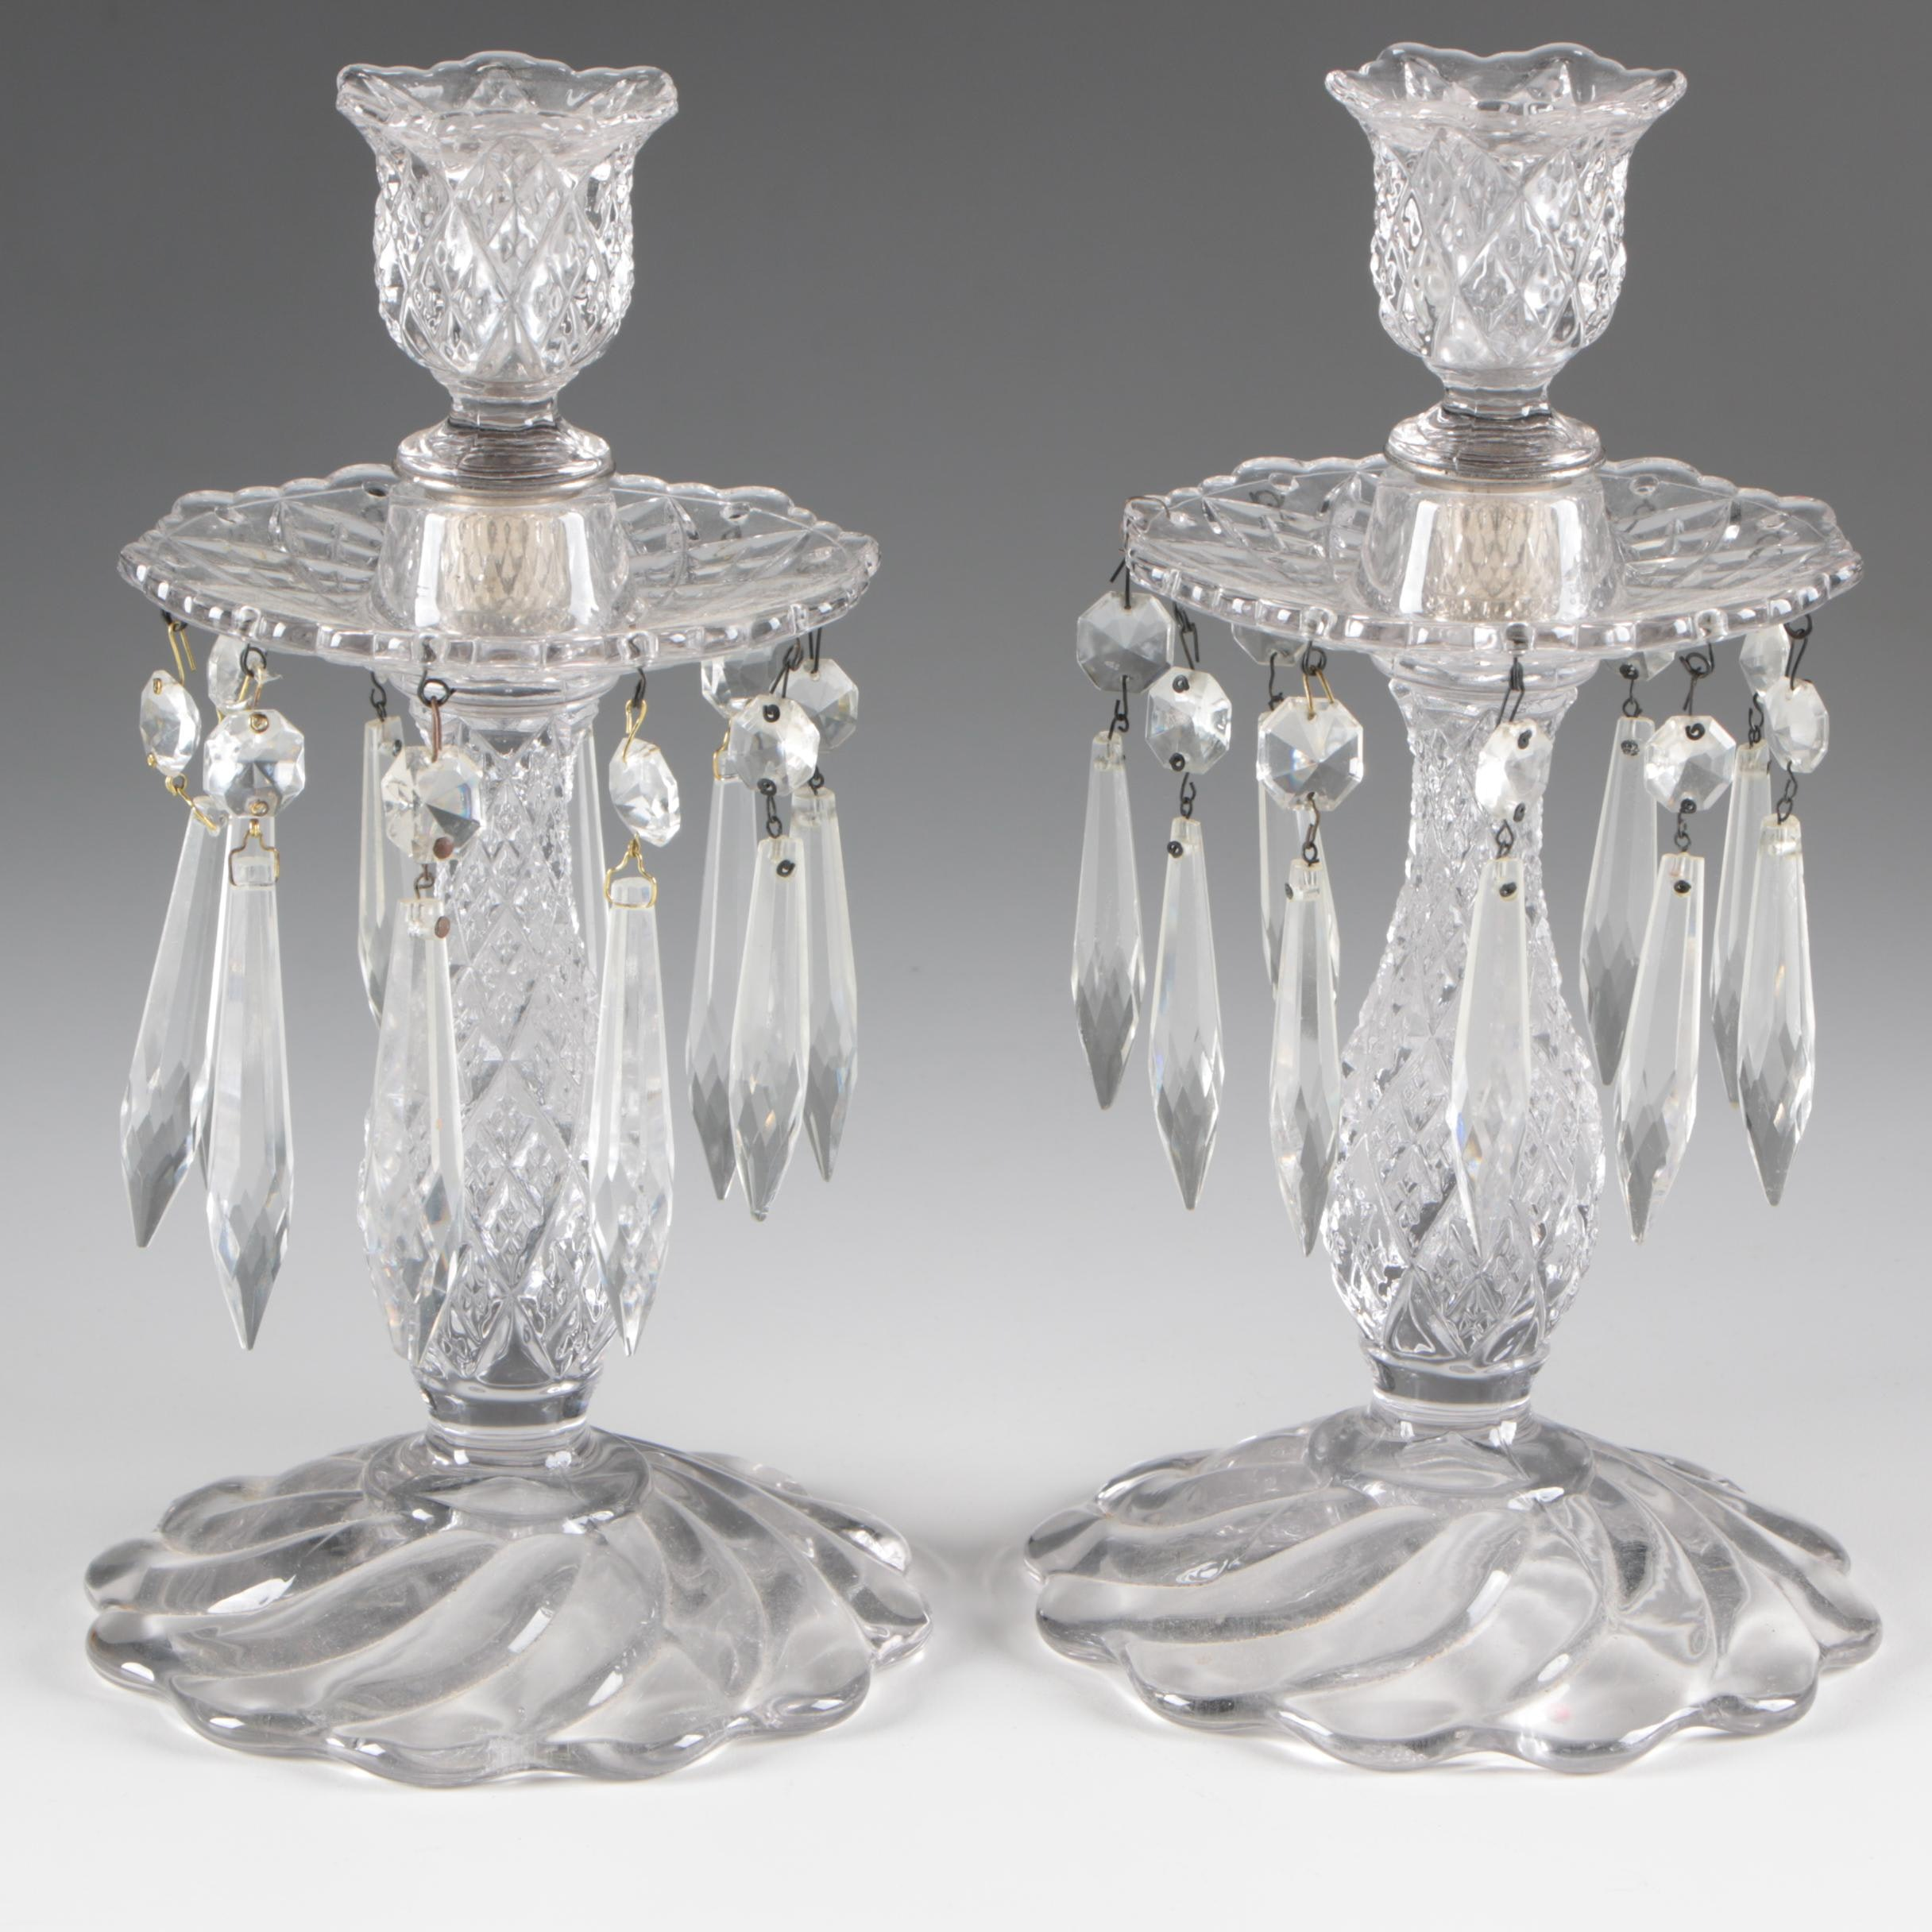 Pair of Pressed Glass Candlesticks with Cut Glass Drops